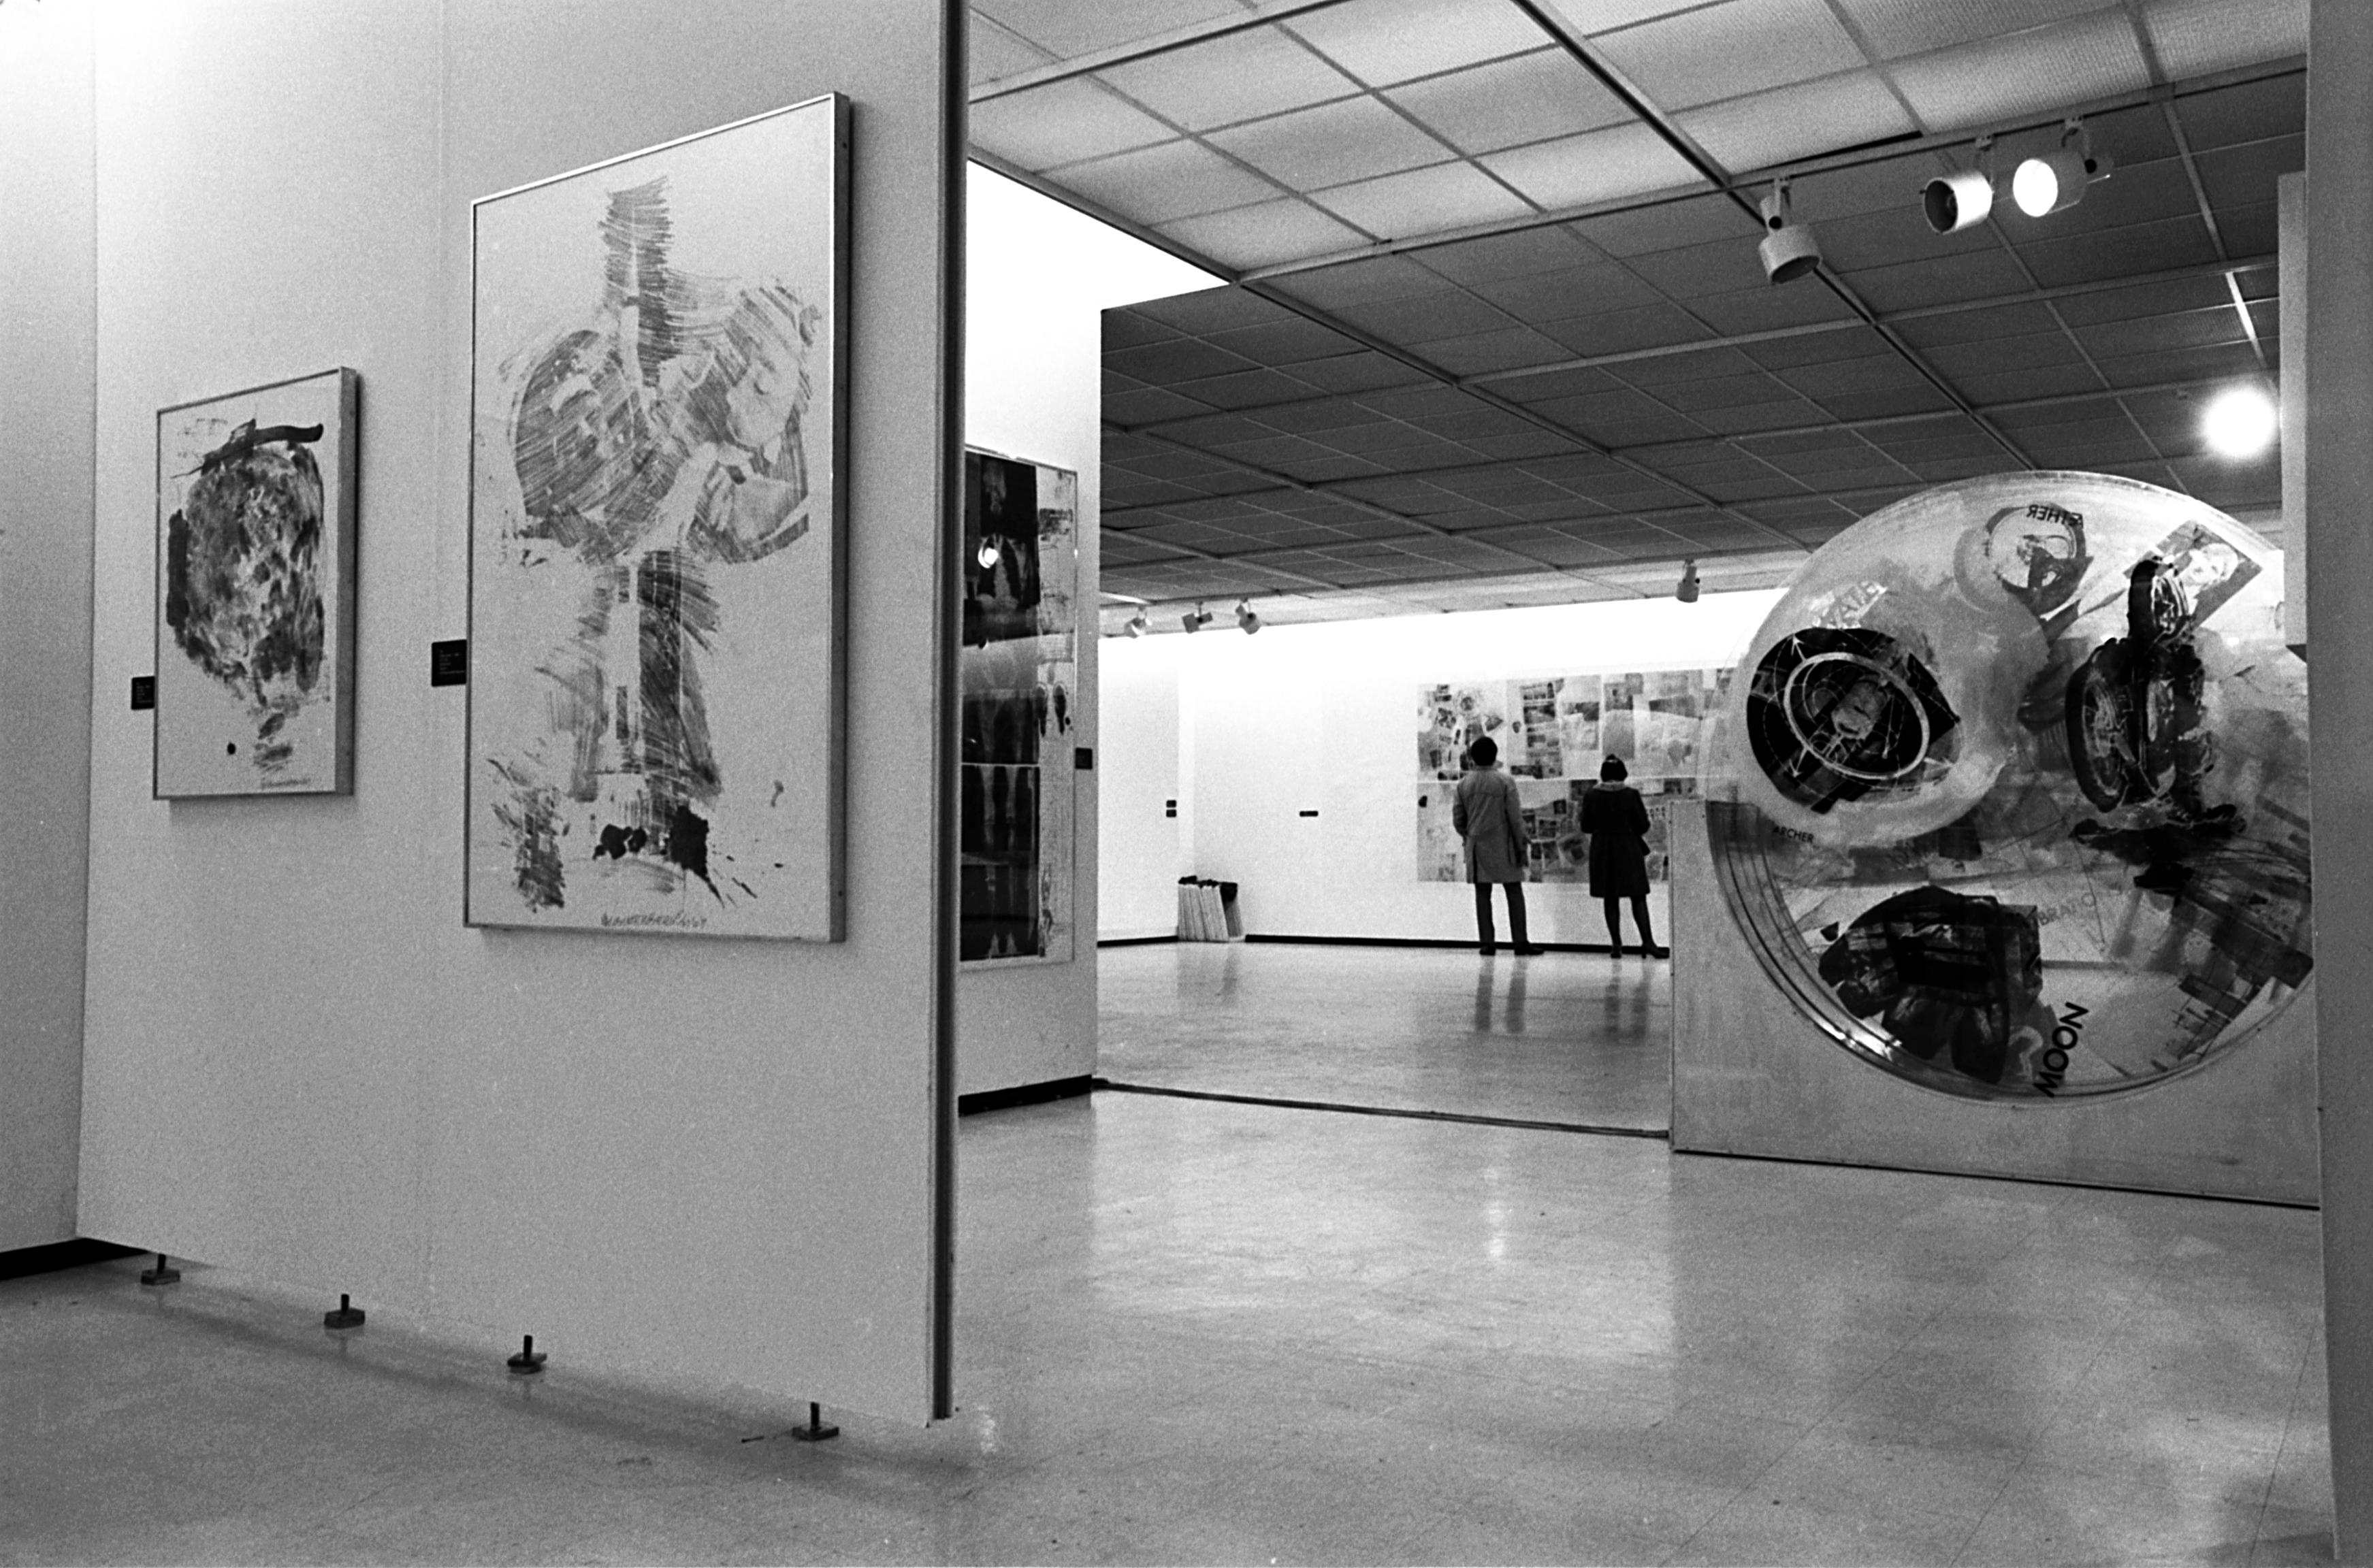 A black-and-white photo of a partial installation view shows a sculpture and multiple other graphic artworks.